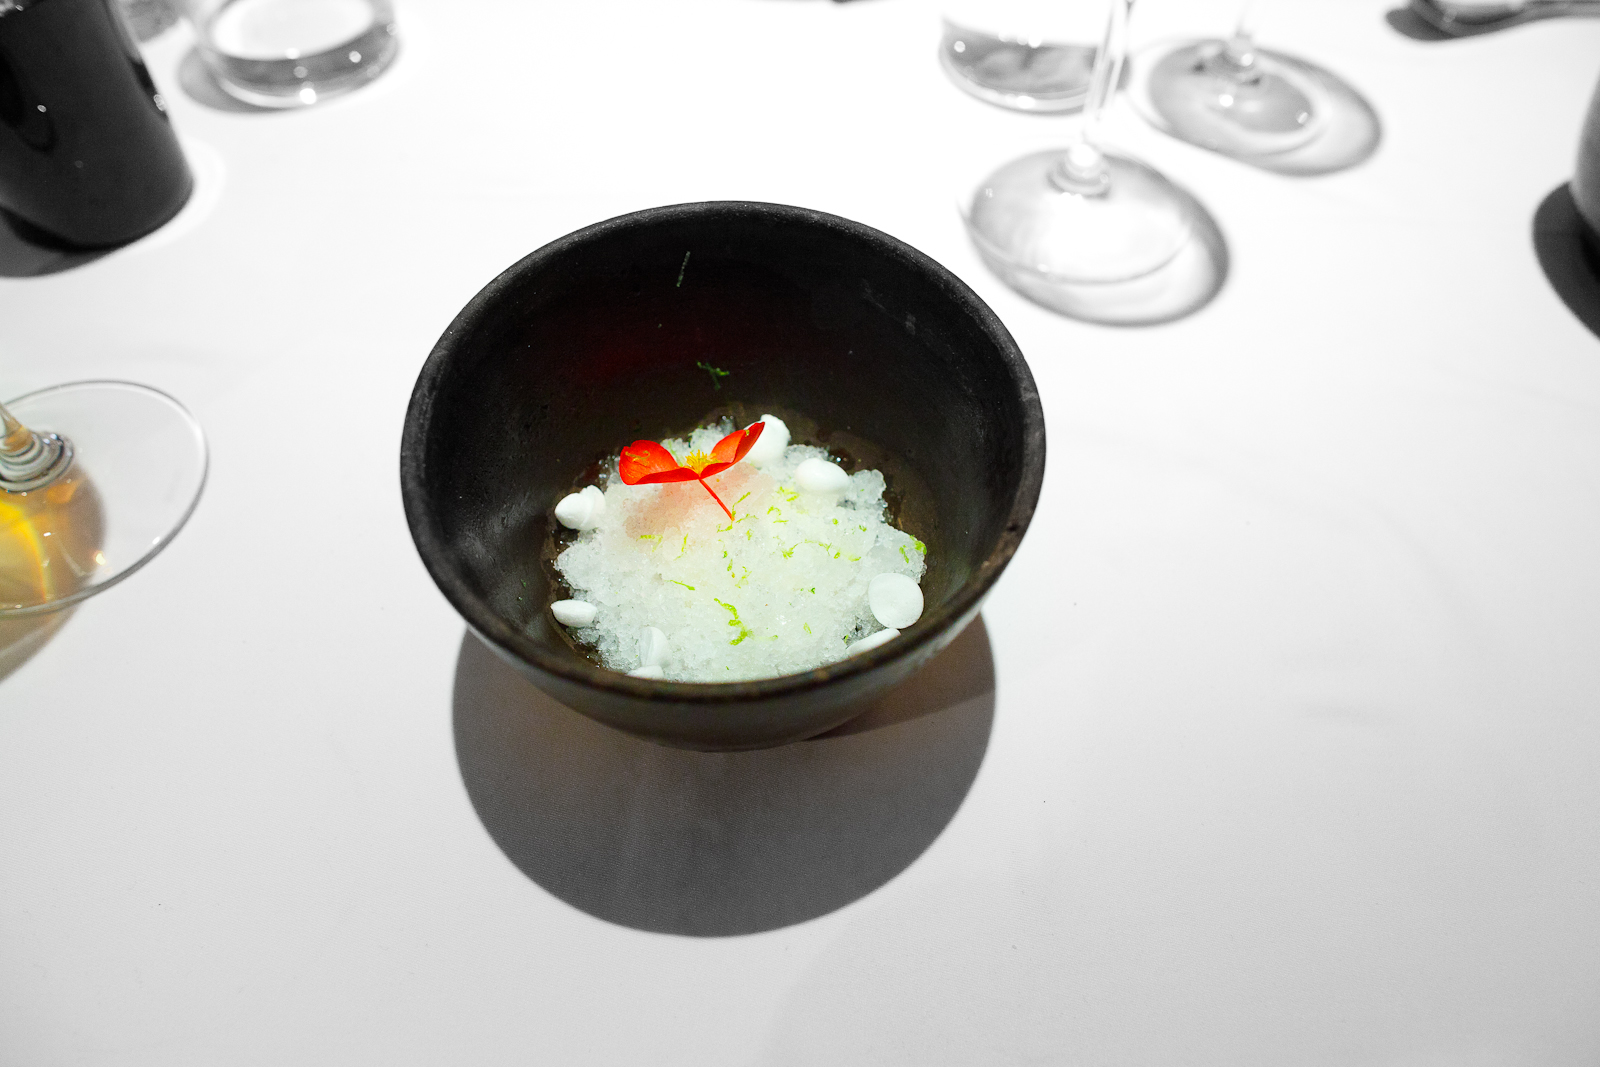 7th Course: Granizado de margarita, merengue de cointreau y limón (margarita shavings, cointreau merengue)